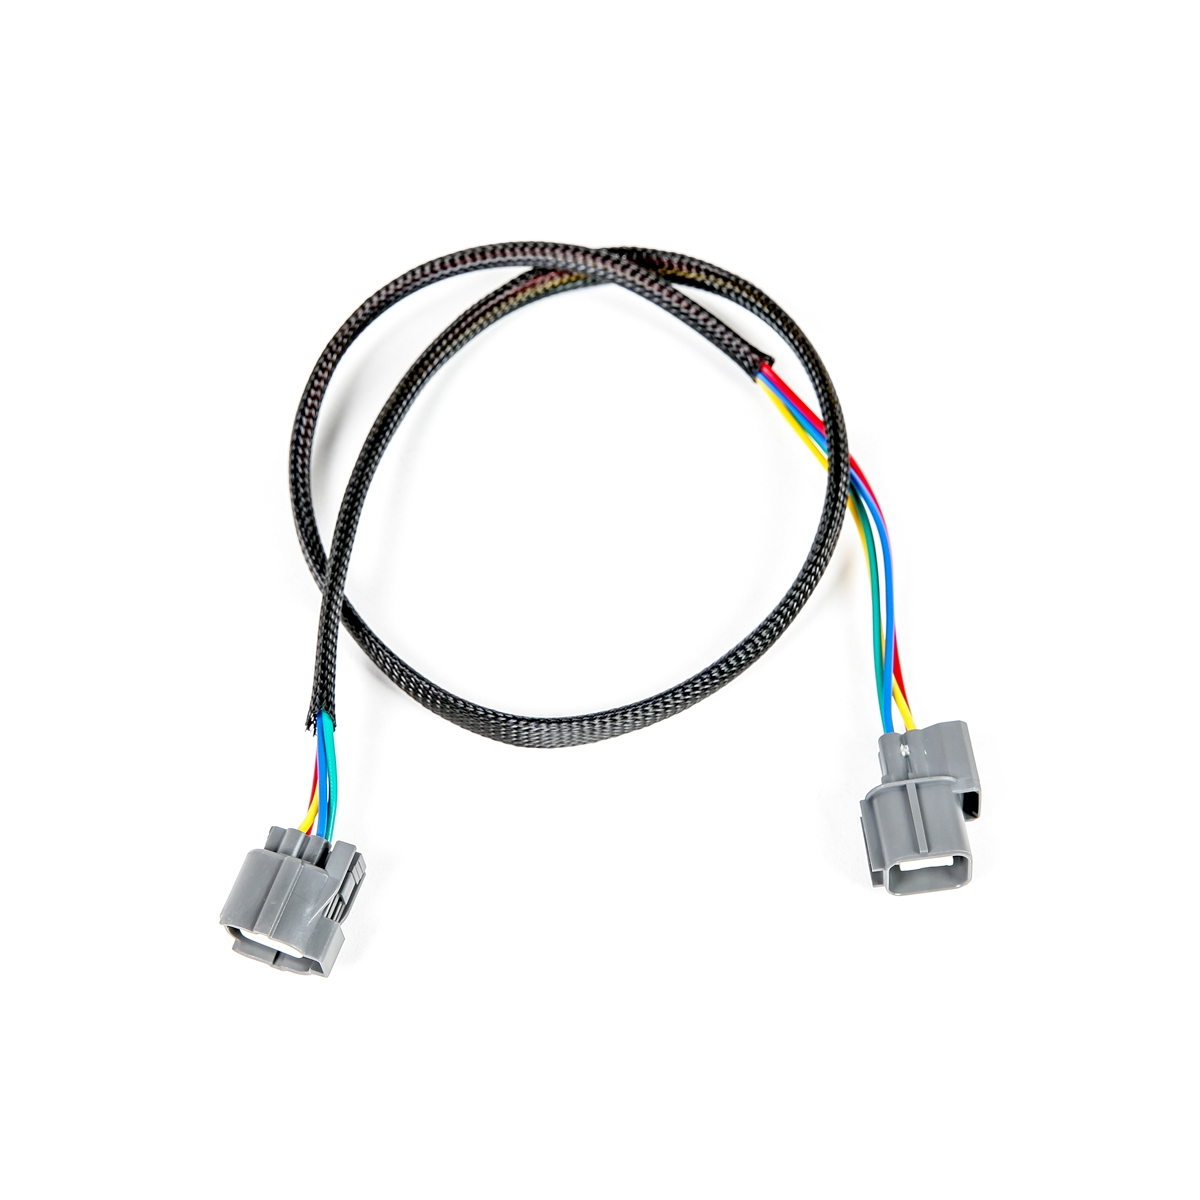 2wire o2 sensor wiring diagram rywire 4 wire oxygen sensor  o2  extension  rywire 4 wire oxygen sensor  o2  extension